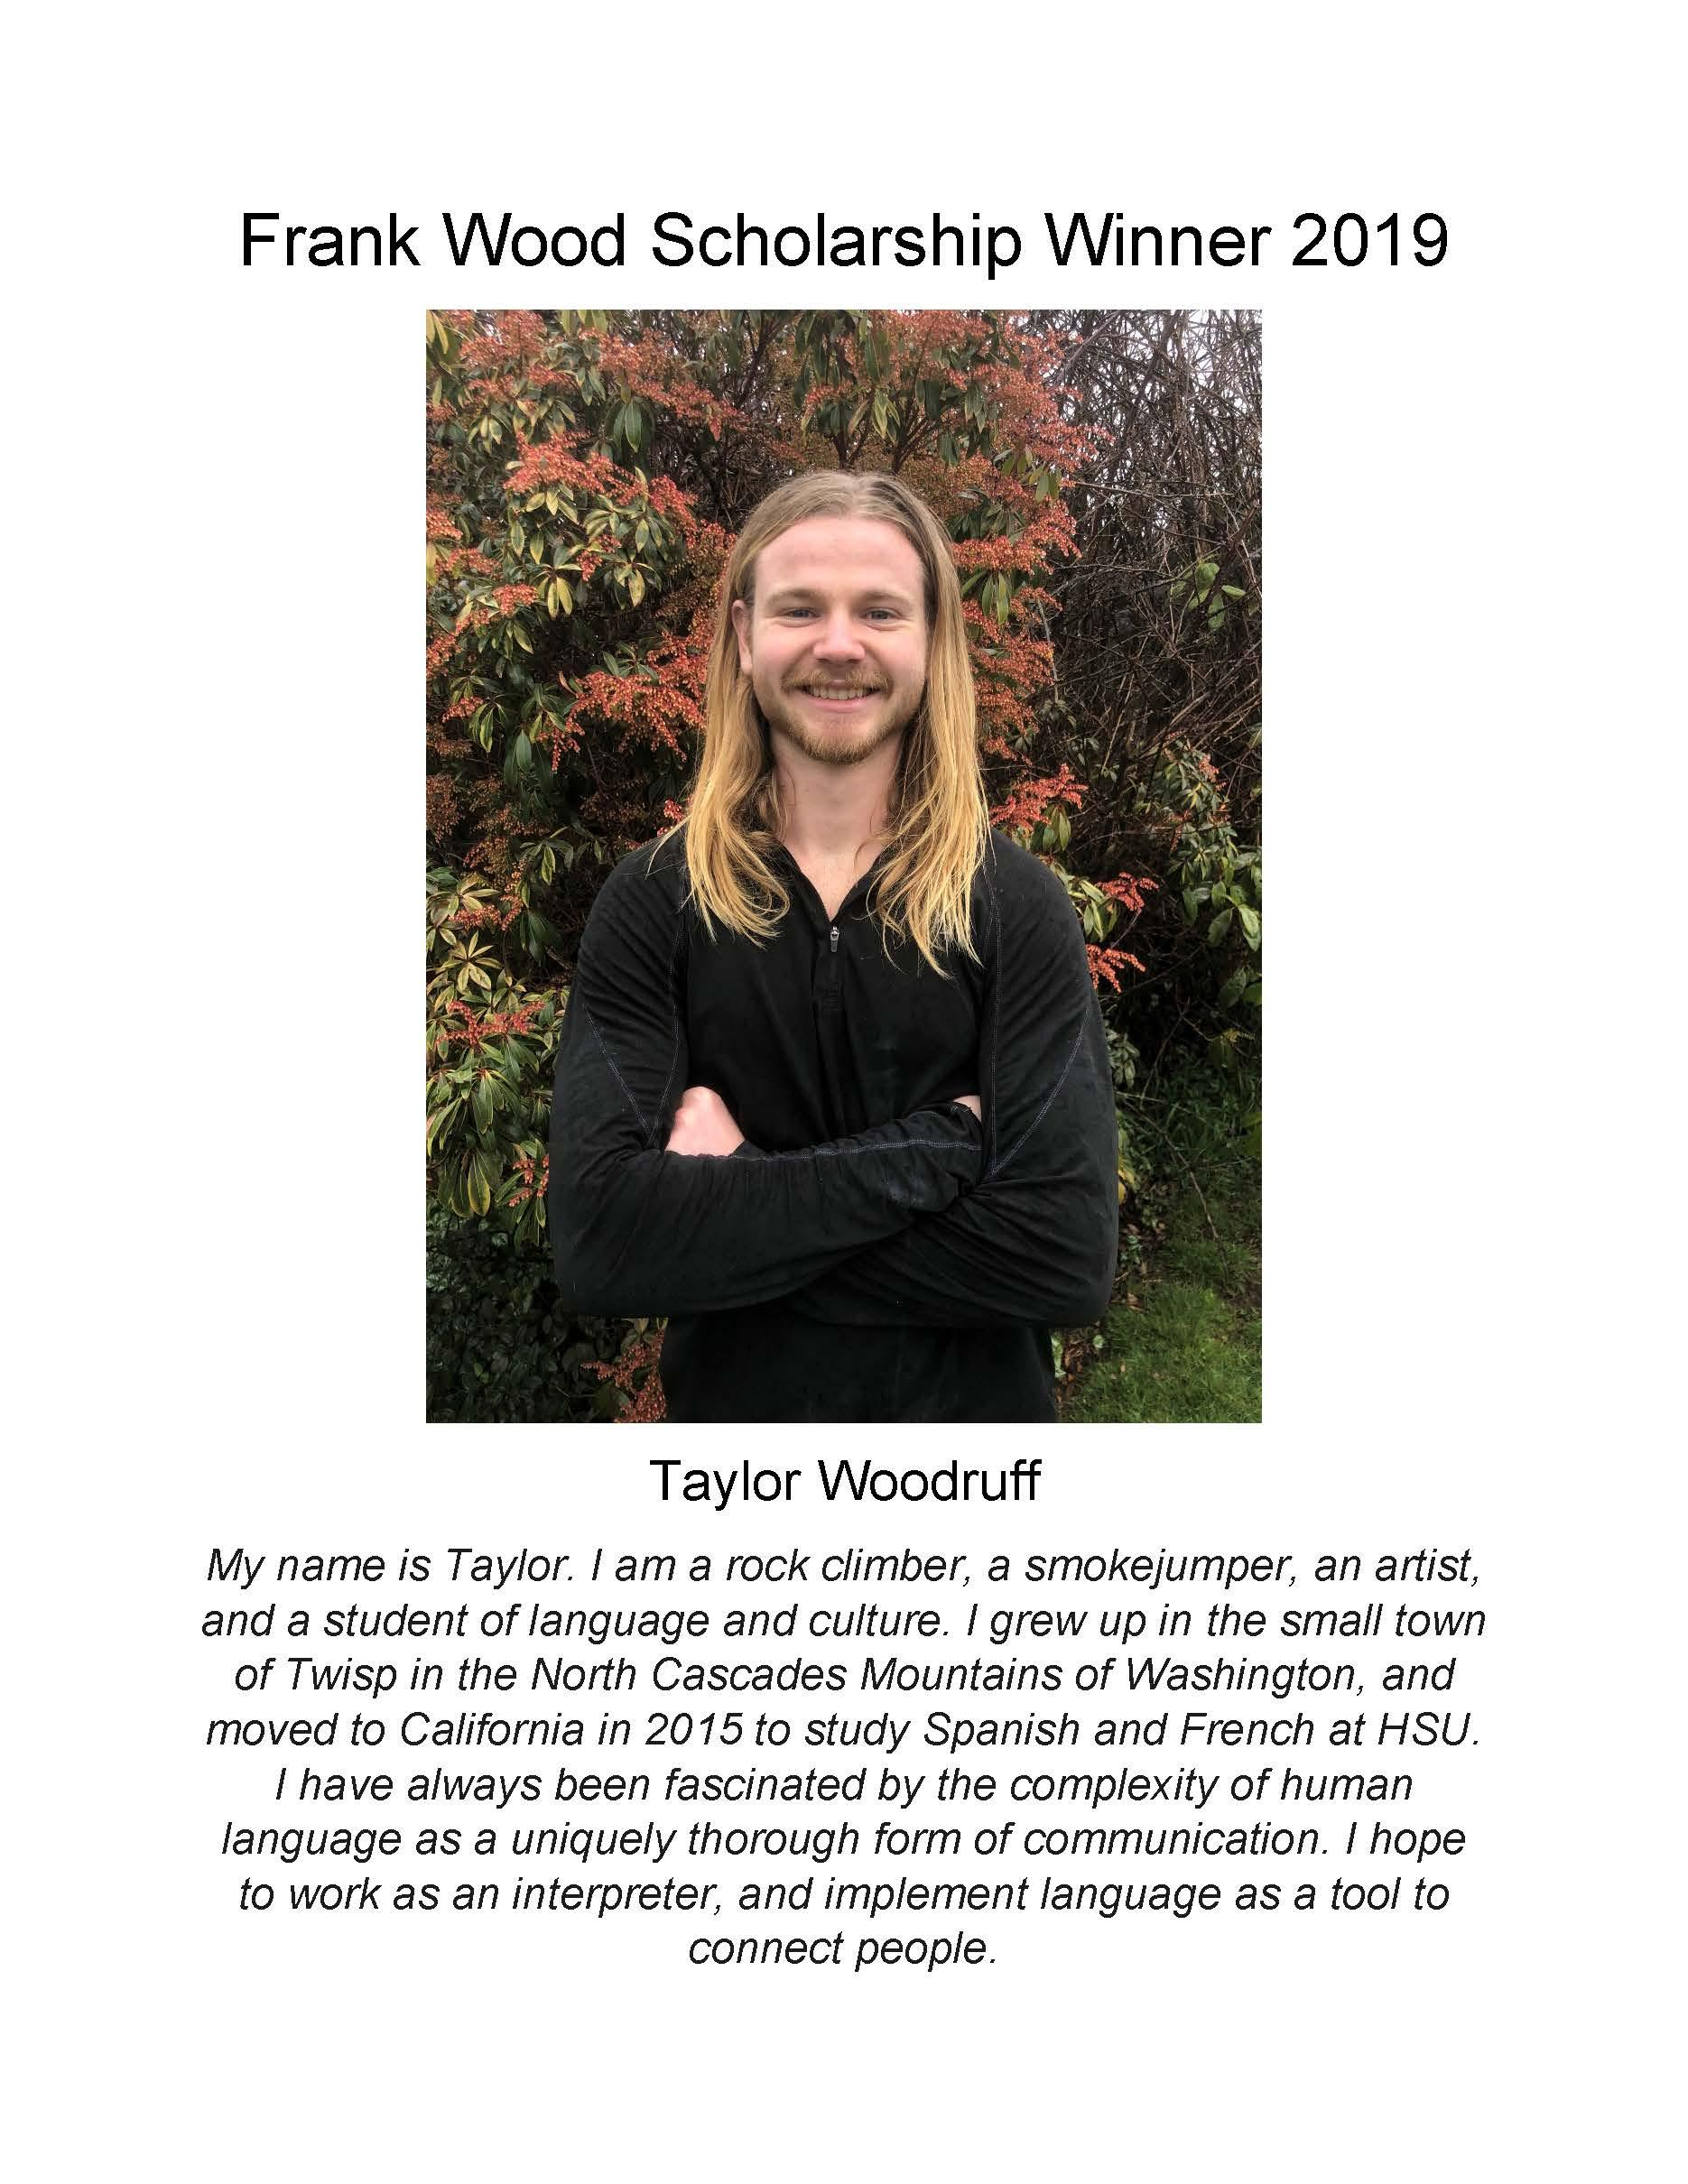 Wood scholarship winner